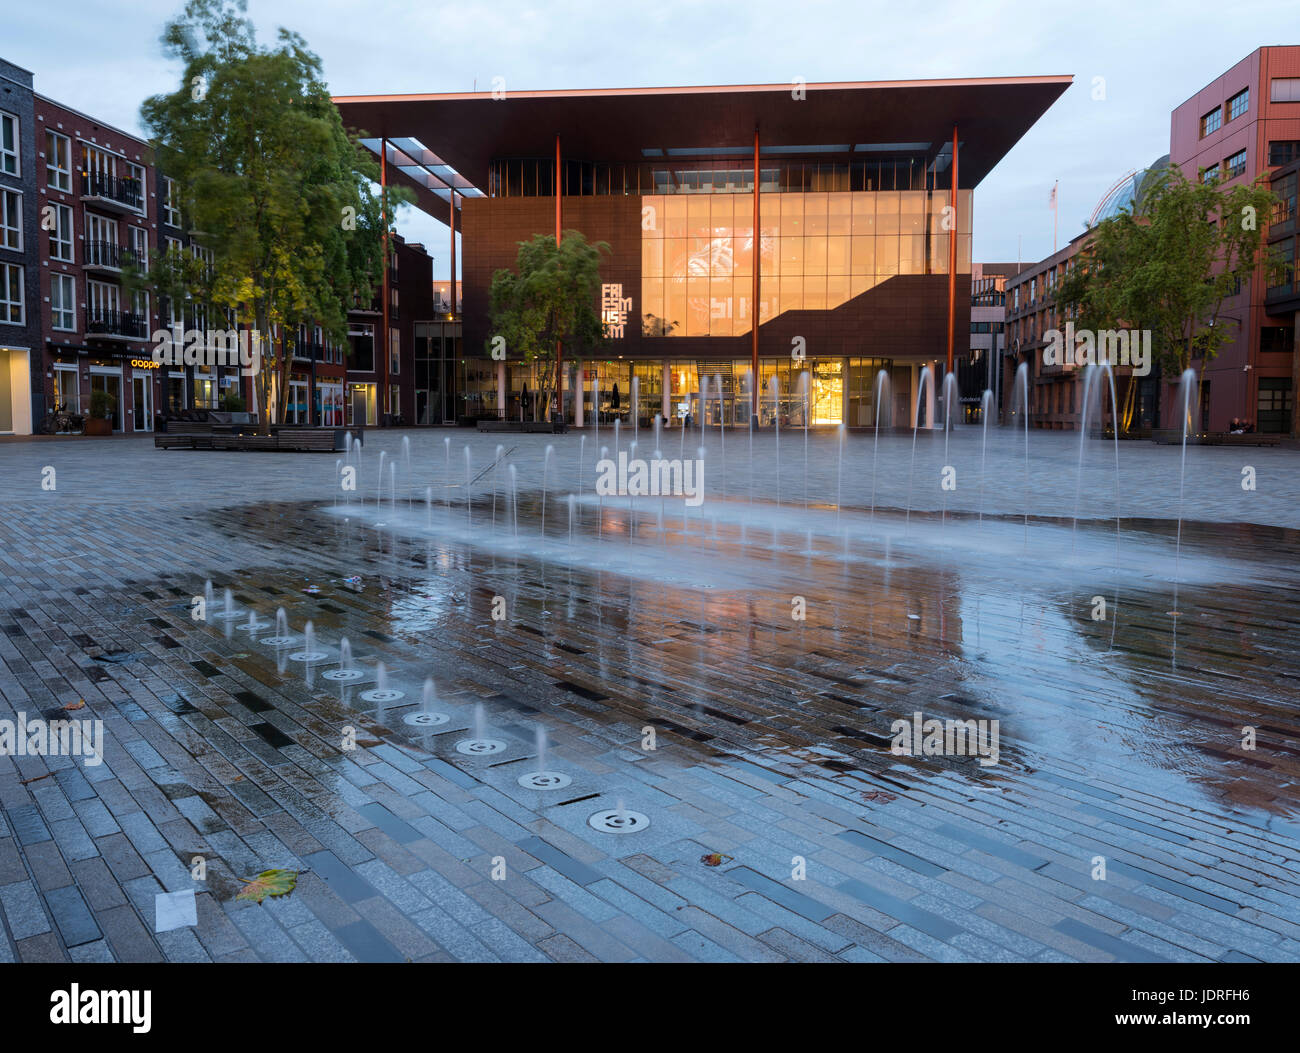 modern fries museum at dusk in center of old province capital leeuwarden of friesland in the netherlands with reflections - Stock Image